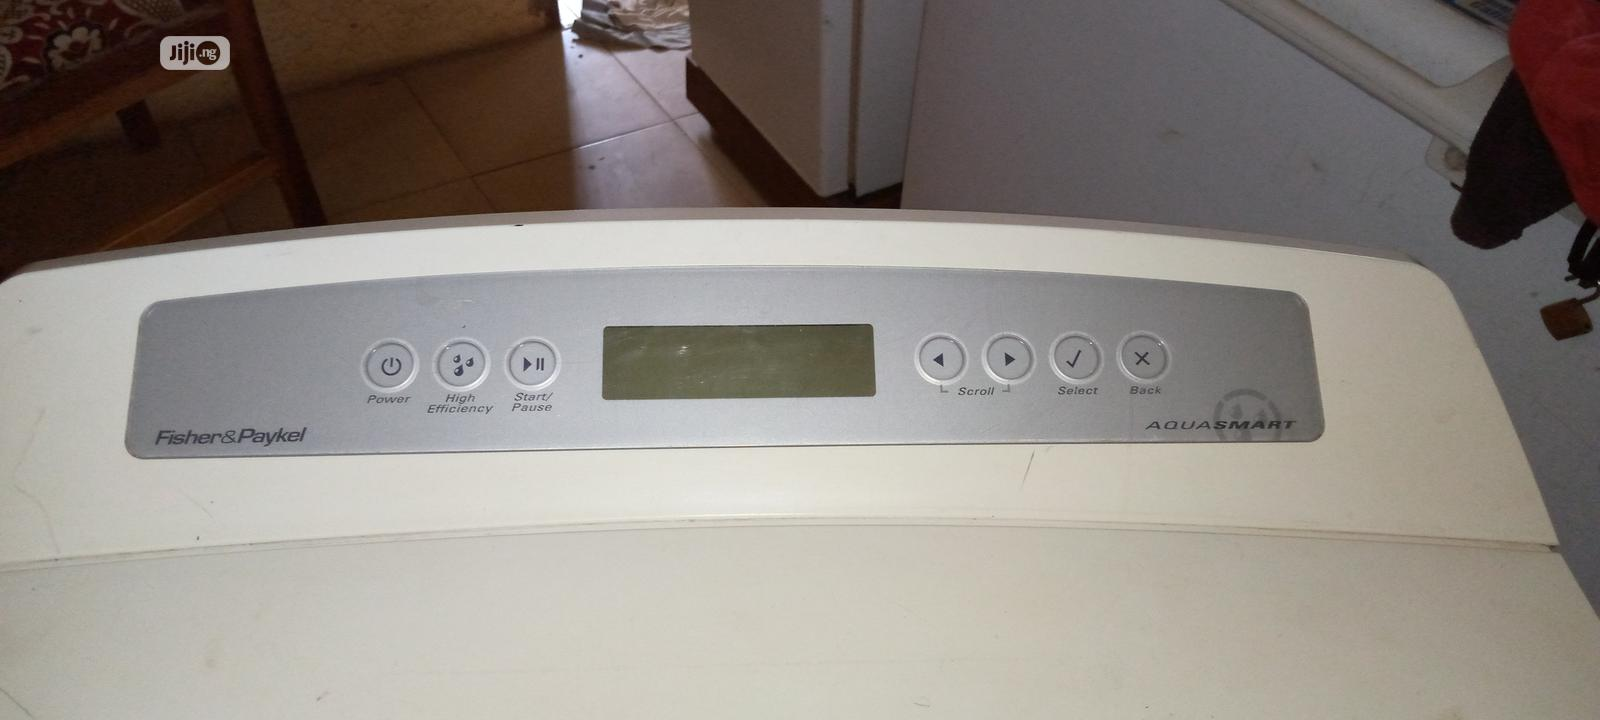 Washing Machine | Home Appliances for sale in Osogbo, Osun State, Nigeria